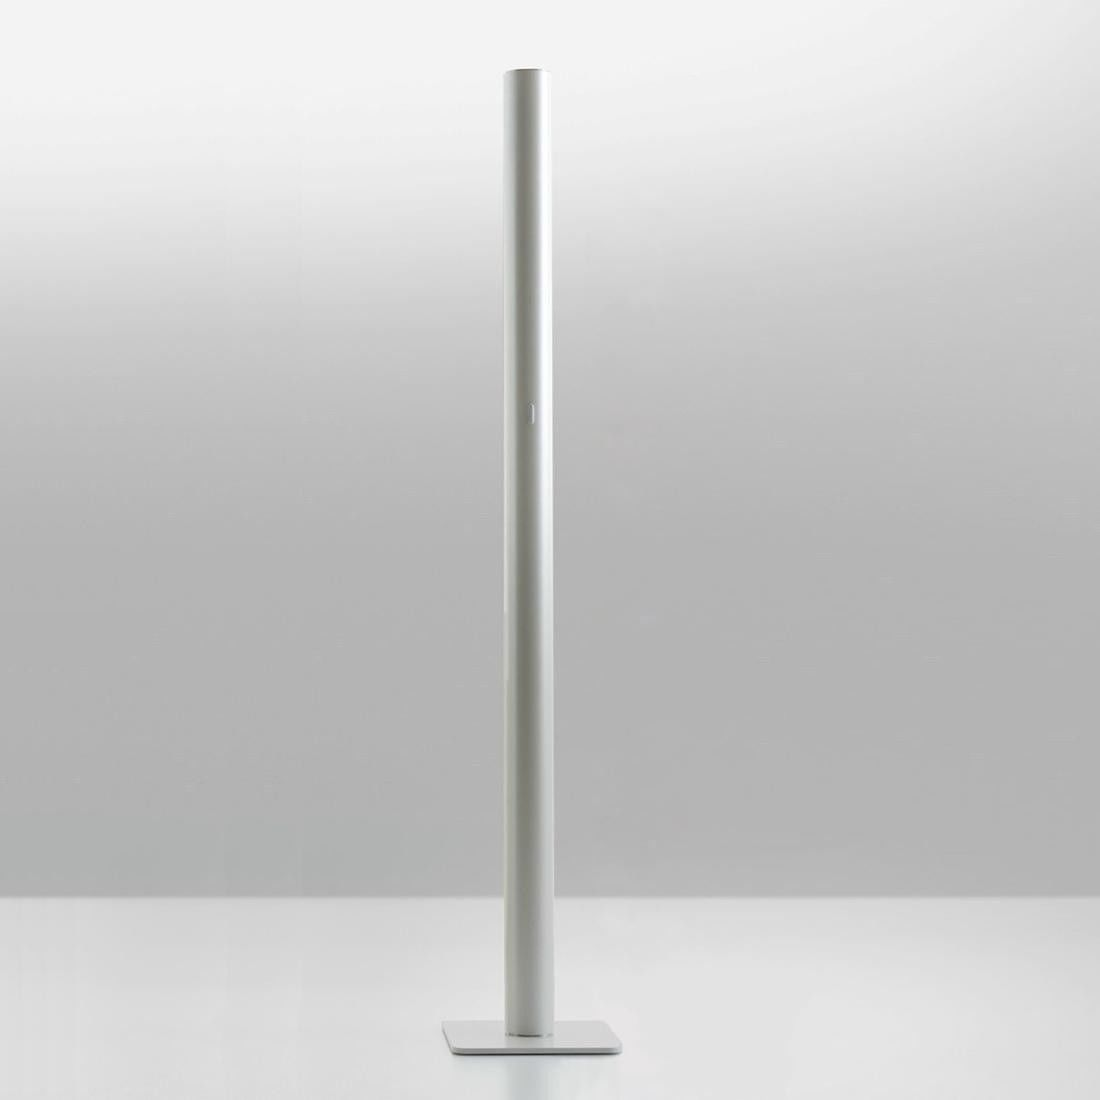 ilio led floor lamp artemide ambientedirectcom With ilio led floor lamp